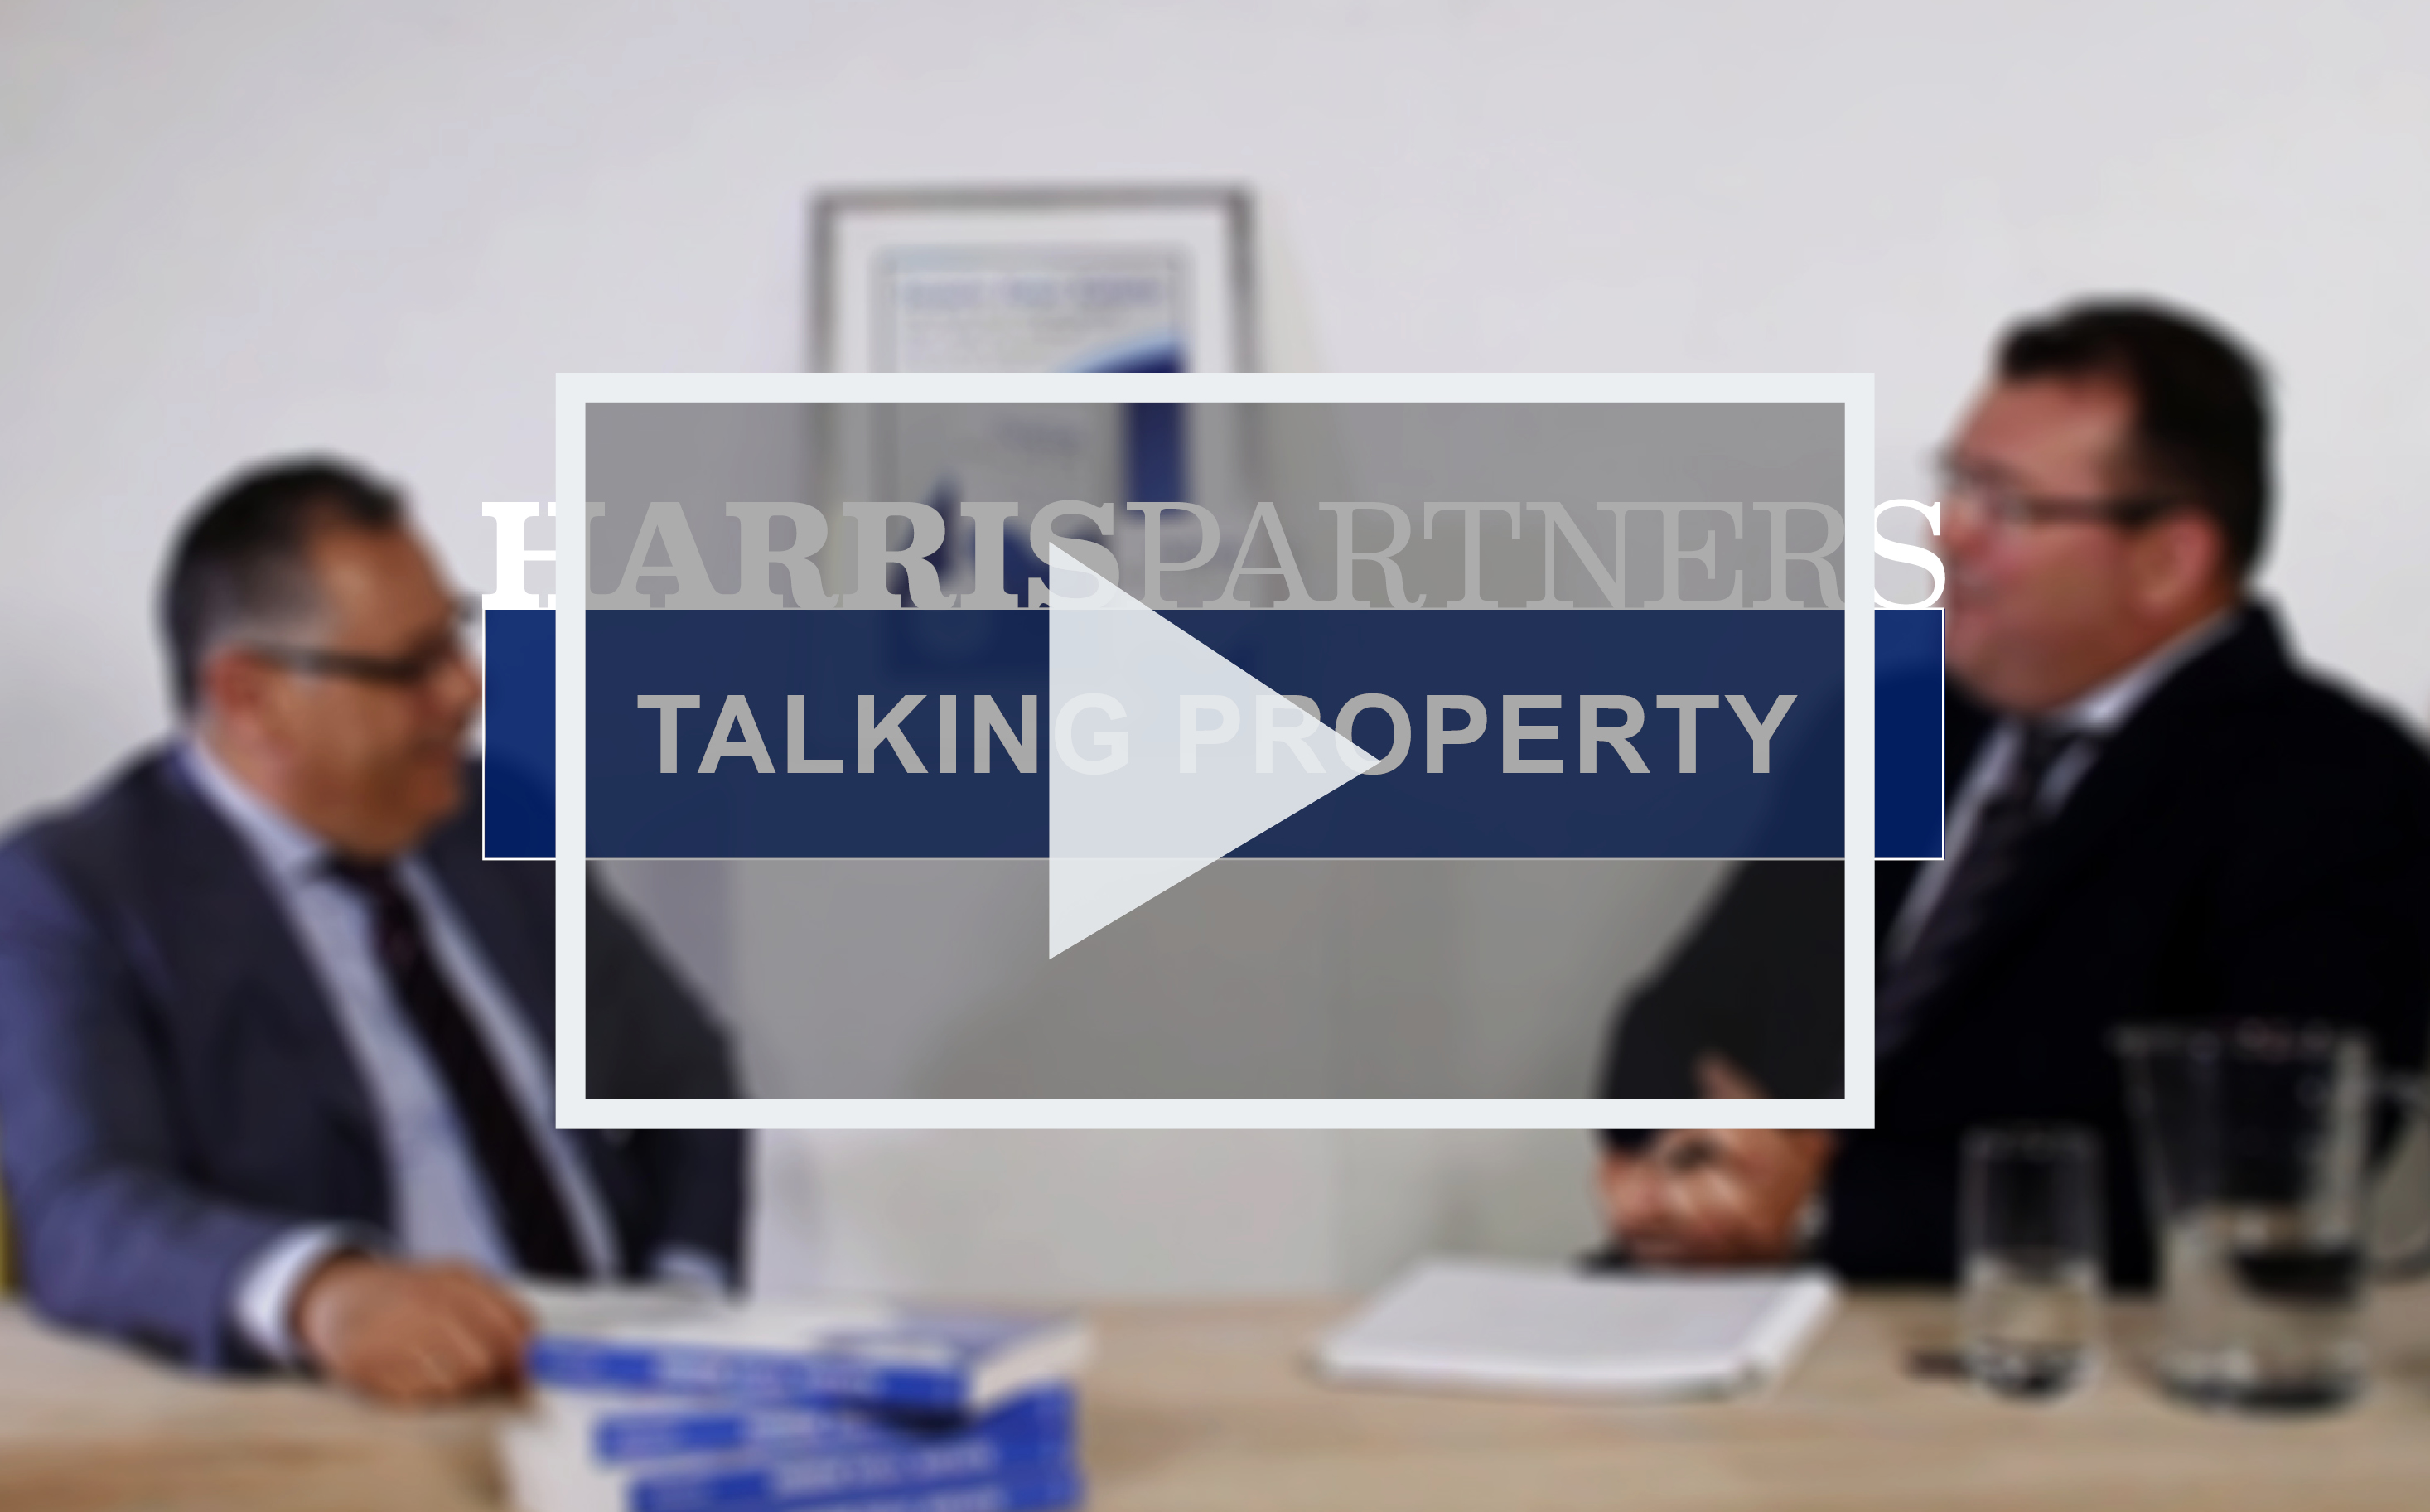 talking sydney property, talking property, michael salvartsis, real property buyers, peter o'malley, valuers, property valuer, property value, buying property, inner west, sydney real estate, inner west realty, inner west residential, real estate